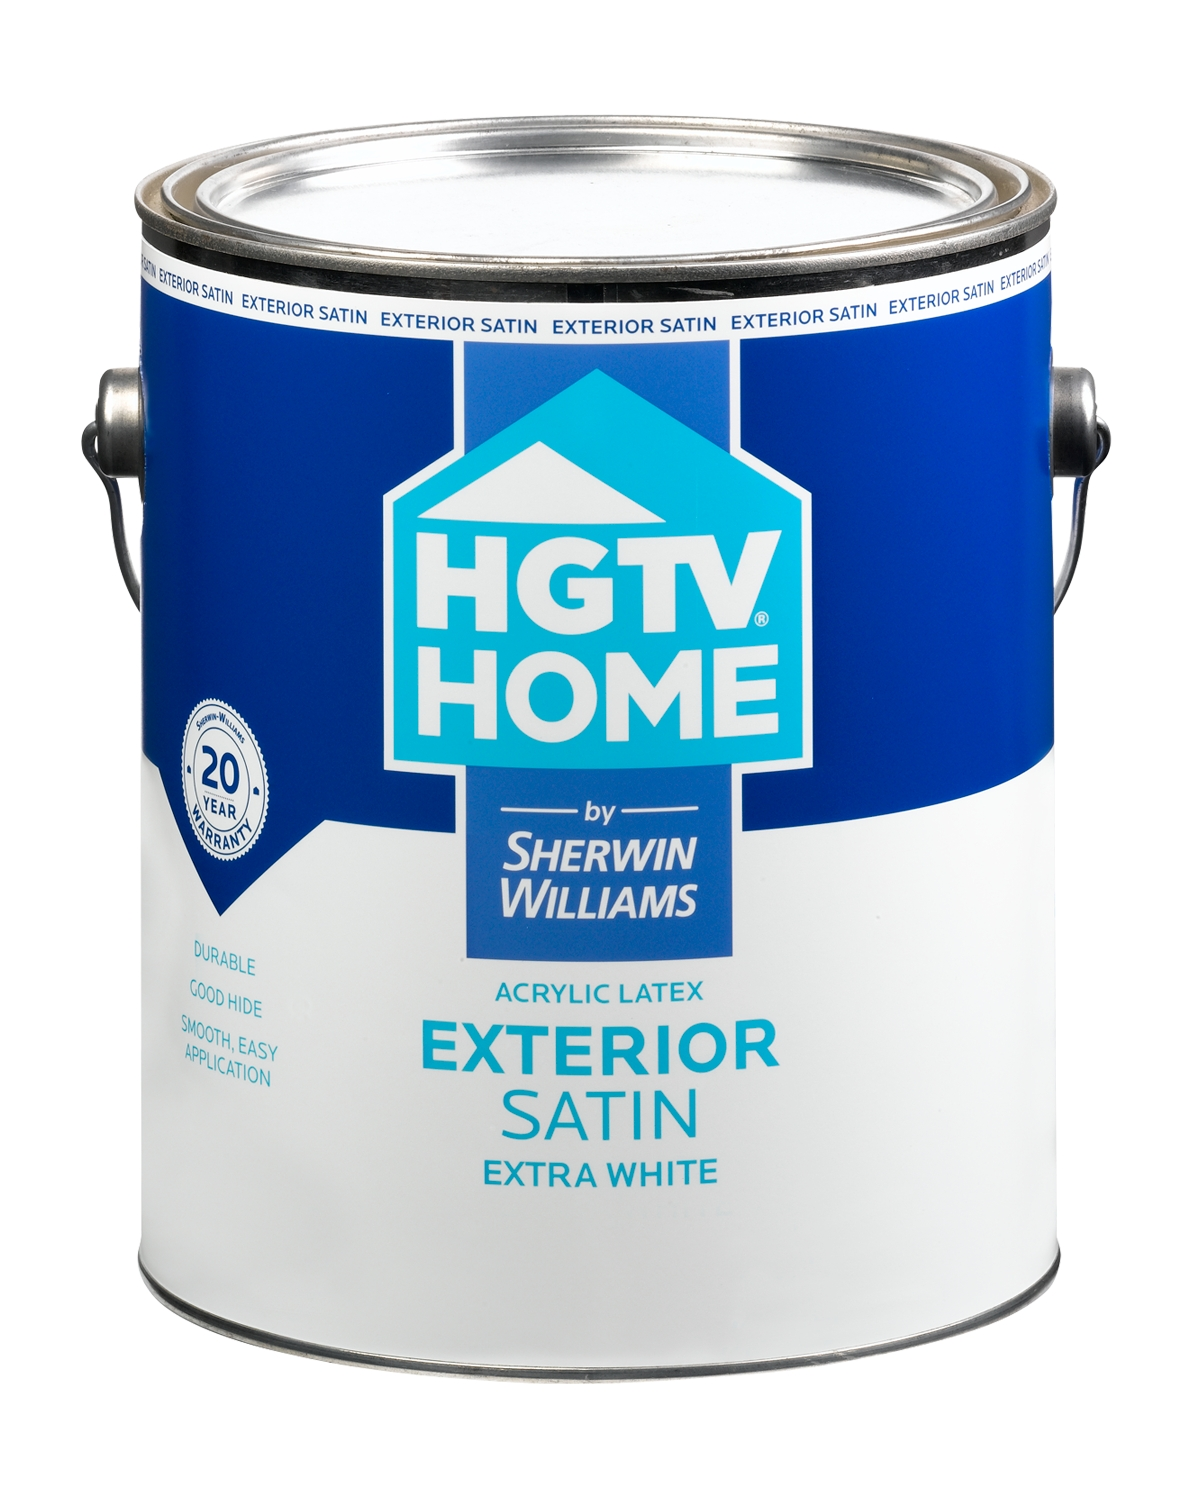 HGTV® HOME by Sherwin-Williams Exterior Paint